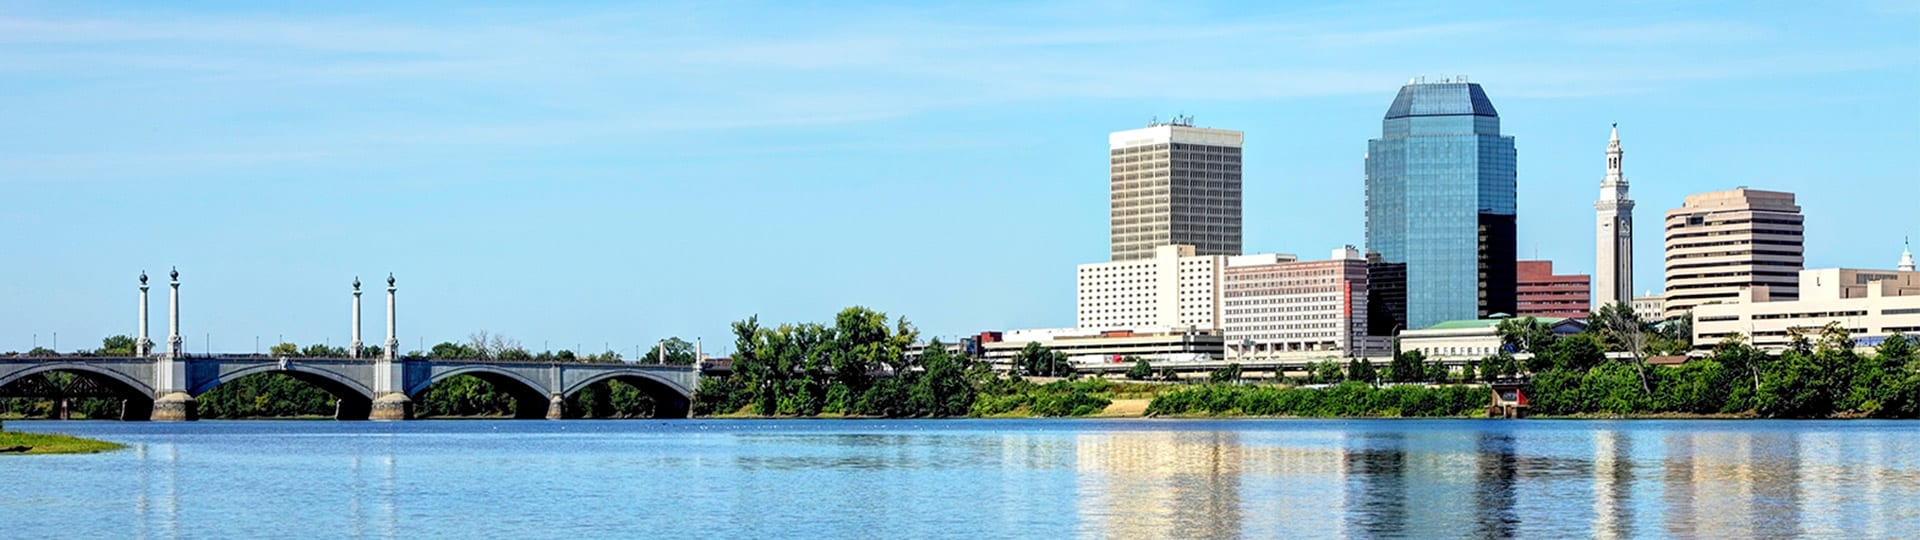 Downtown Springfield Waterfront